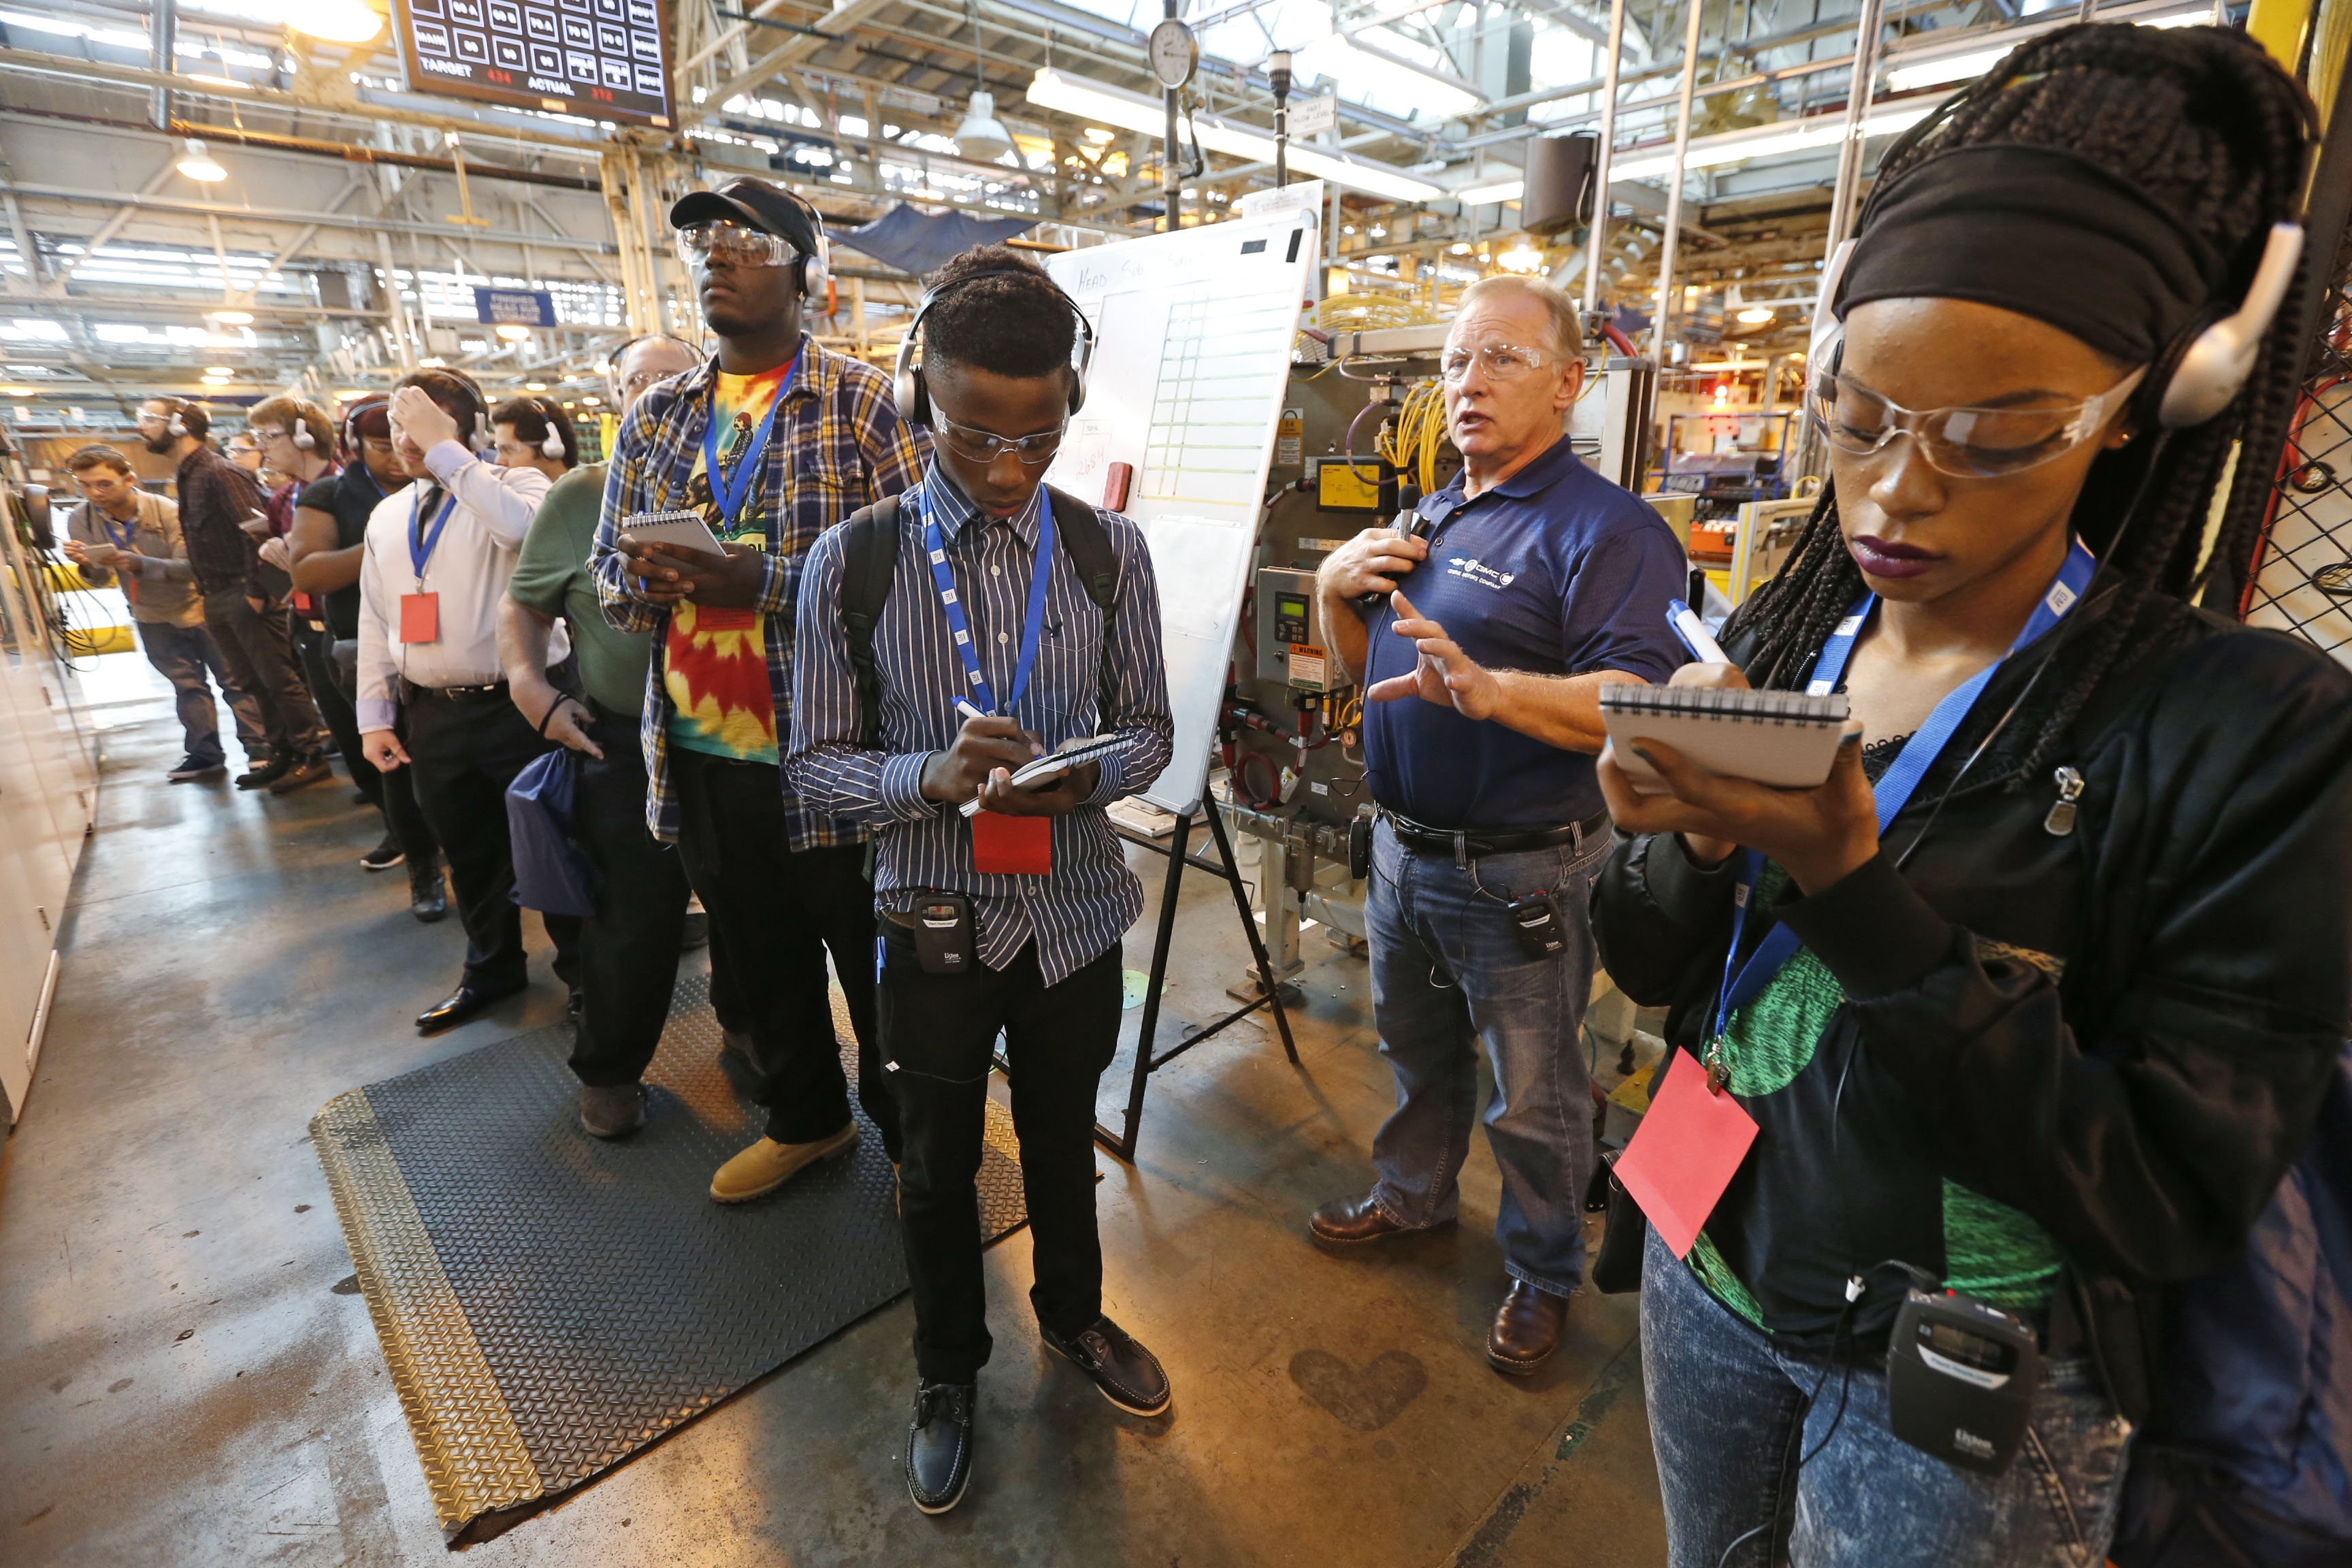 """Mike Knop, a General Motors retiree, leads a group of about 100 local high school students and teachers on a tour of GM's engine plant in the Town of Tonawanda on Wednesday. One point of interest was a robotic unit that he called """"a one-of-a-kind system in the world."""""""